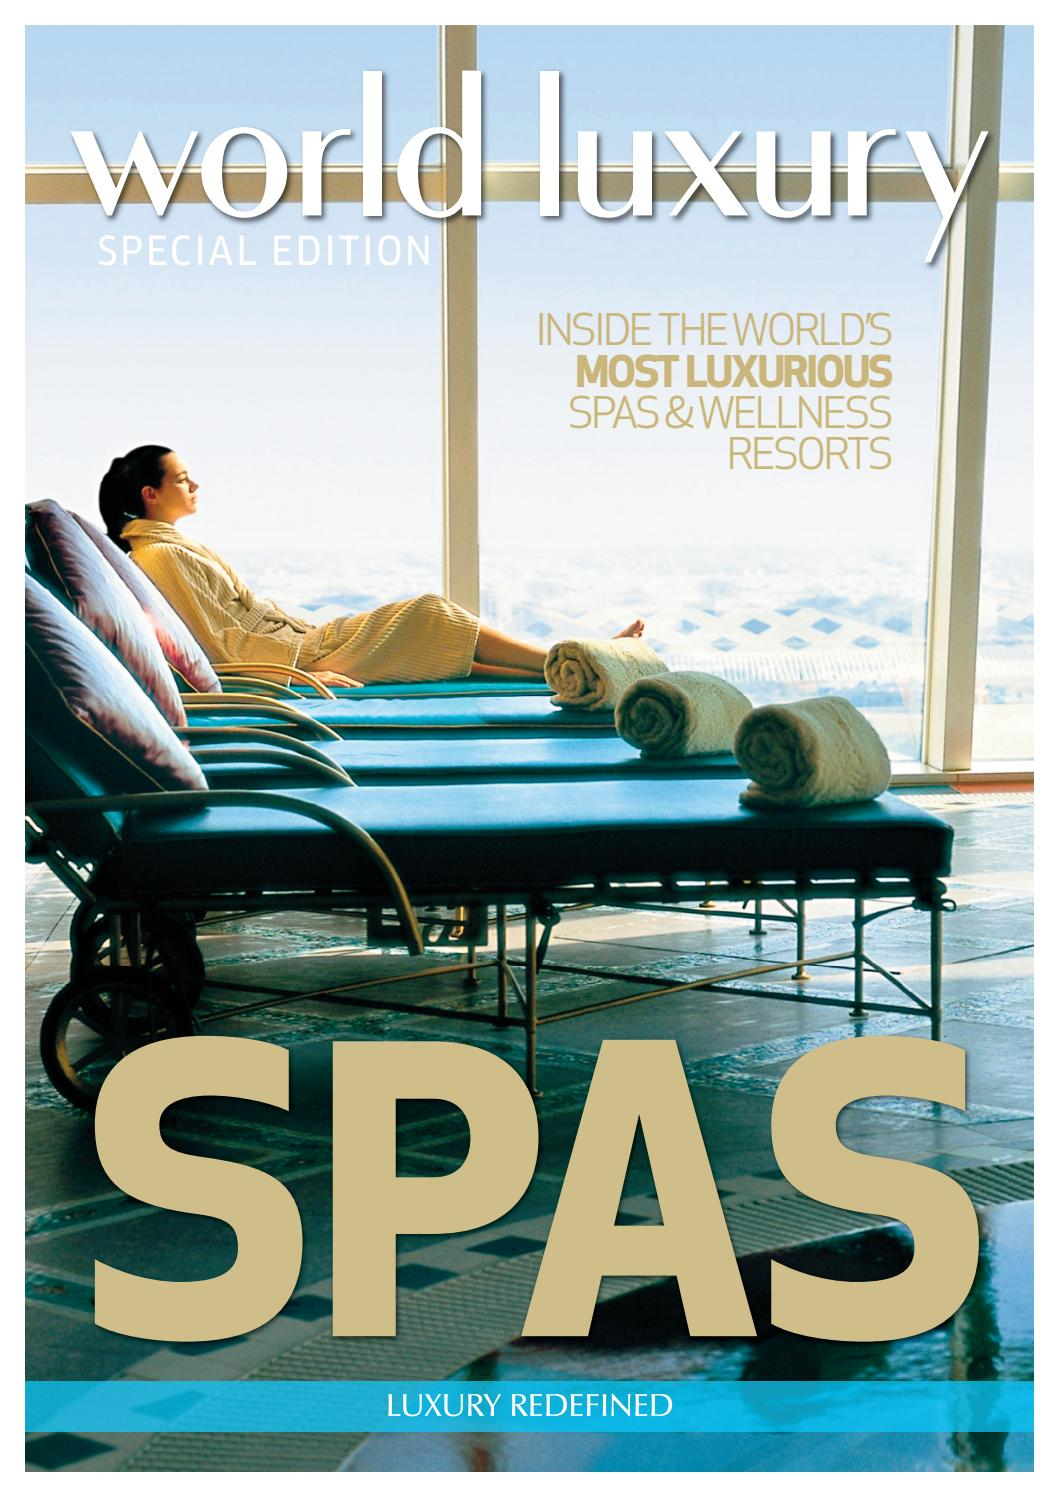 World Luxury Magazine - Spas Edition